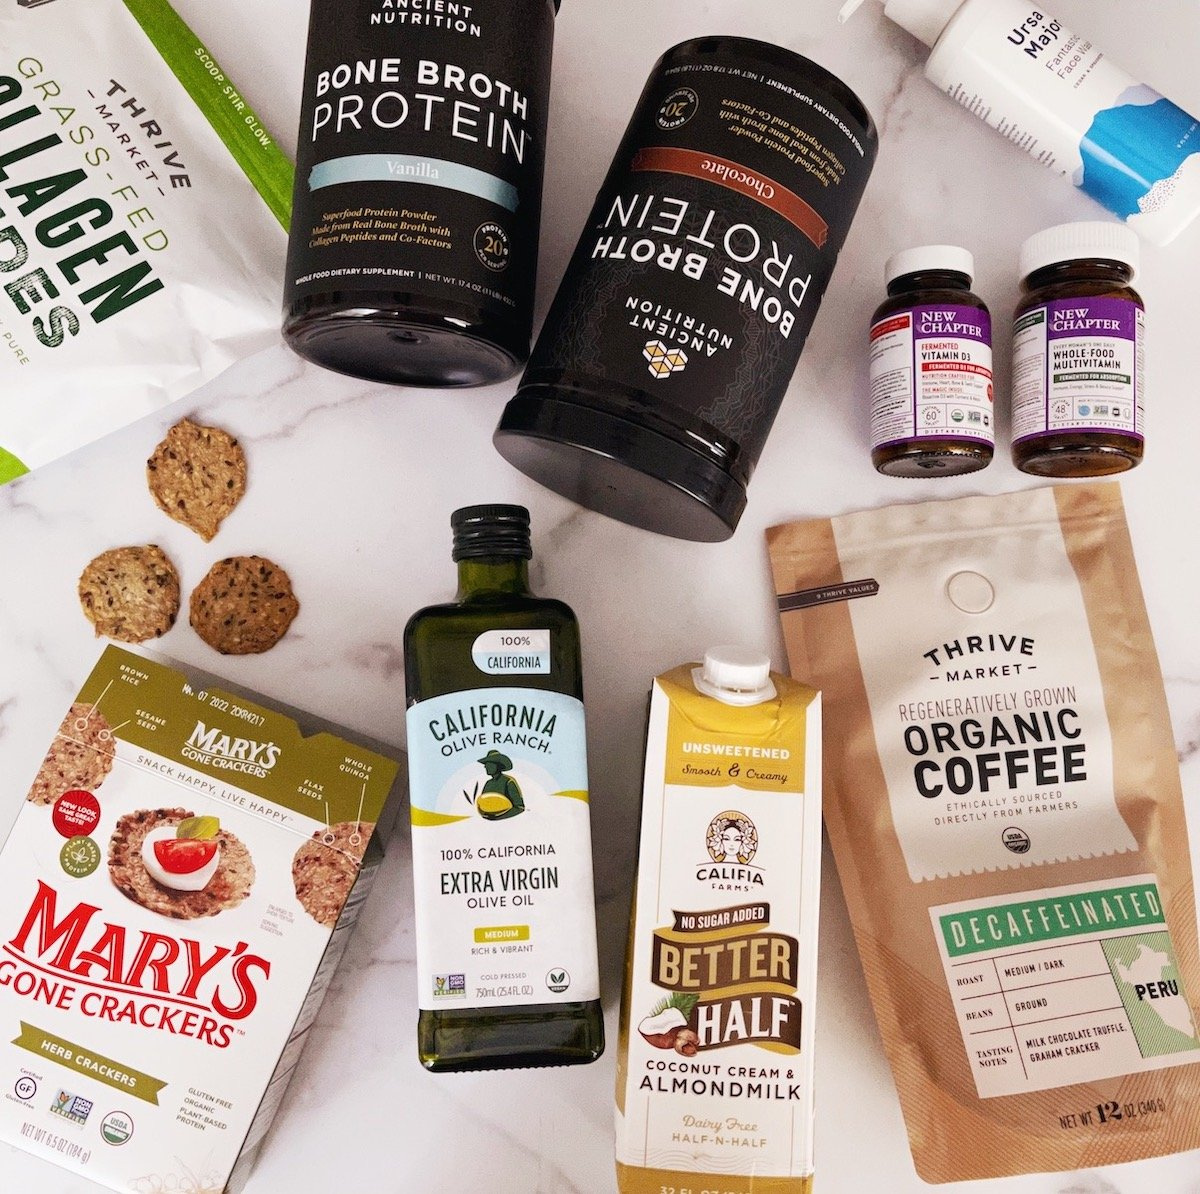 Thrive Market Review – Why I've Been a Member of This Healthy Grocery Delivery Service for Over 3 Years